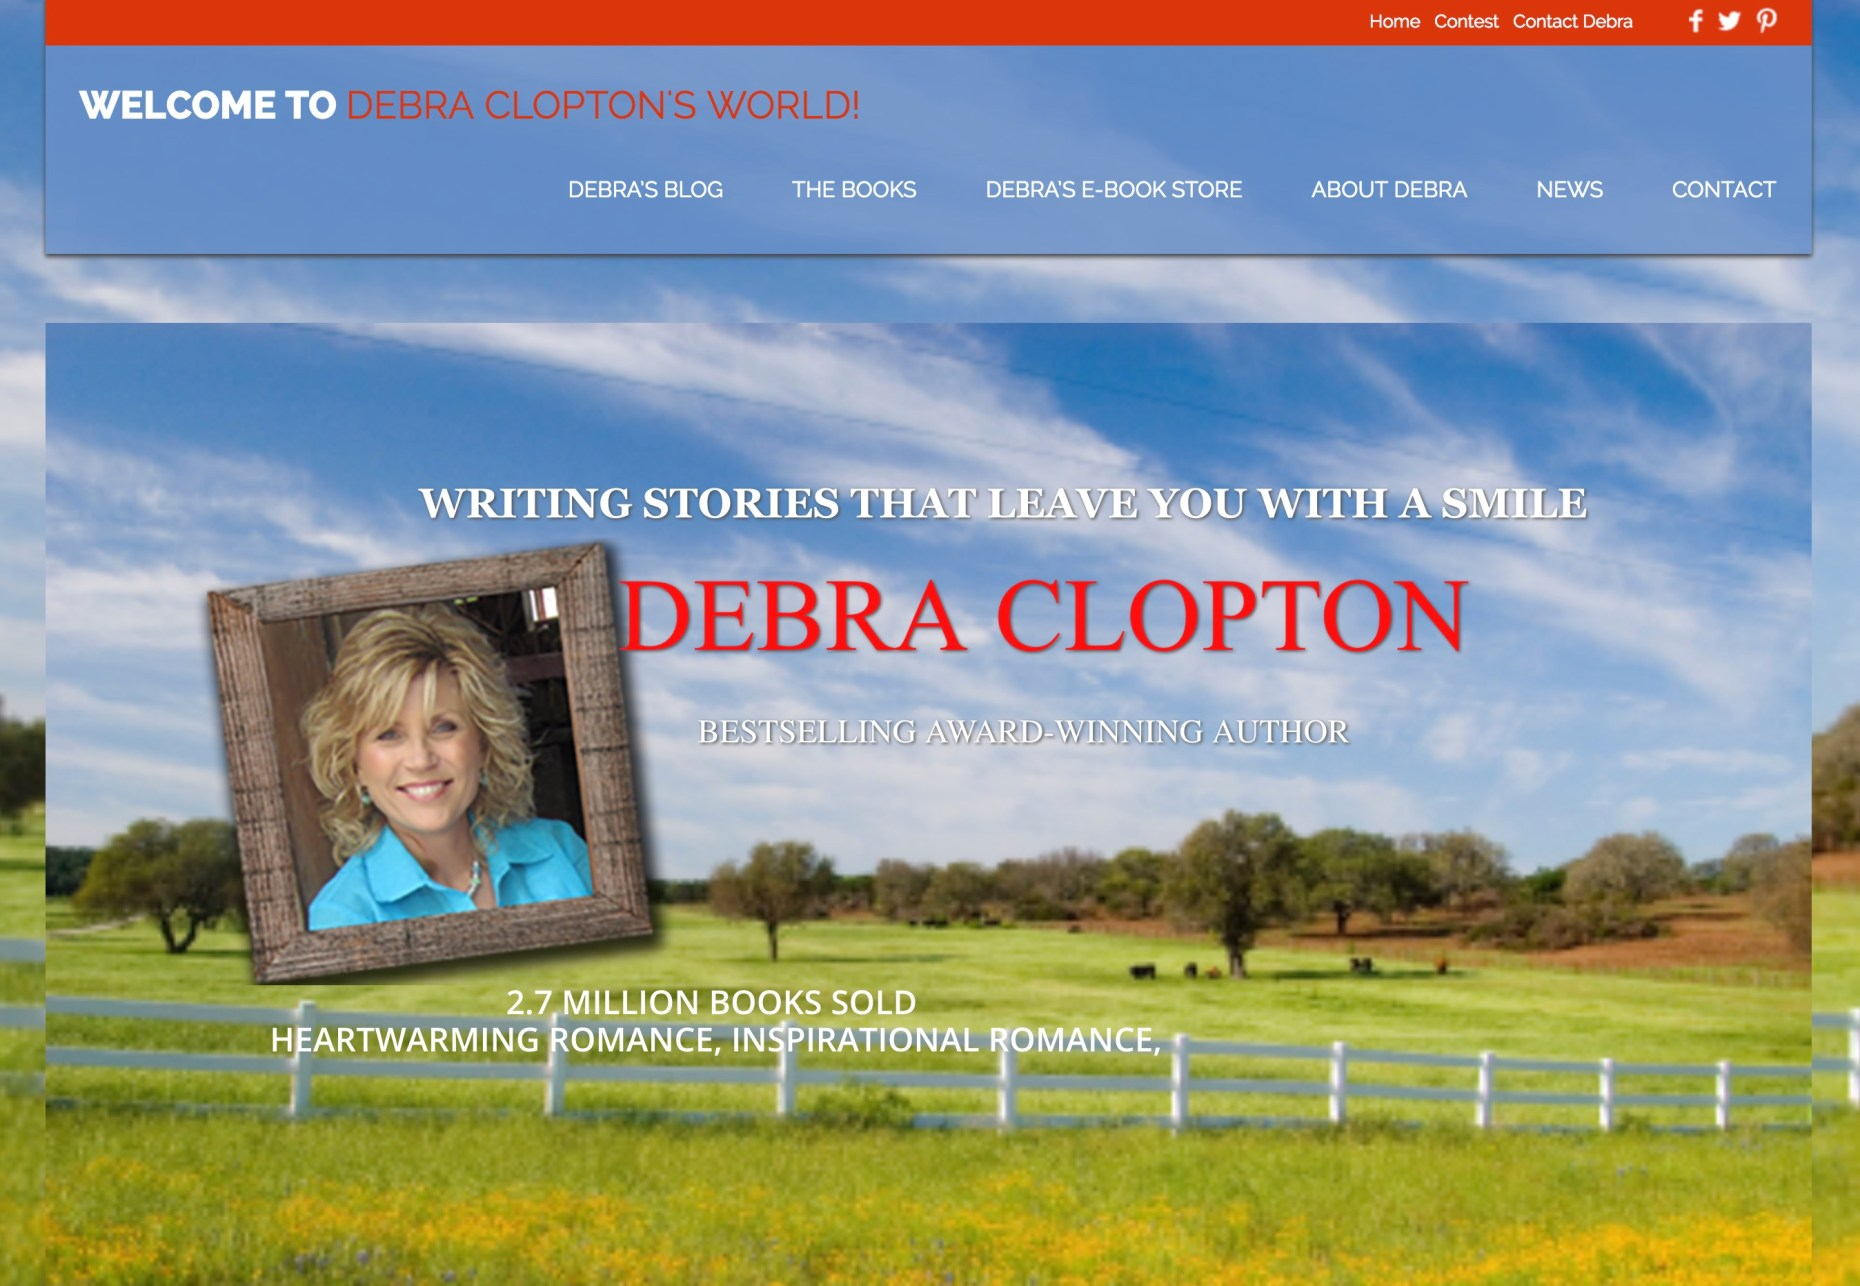 Debra Clopton's author website